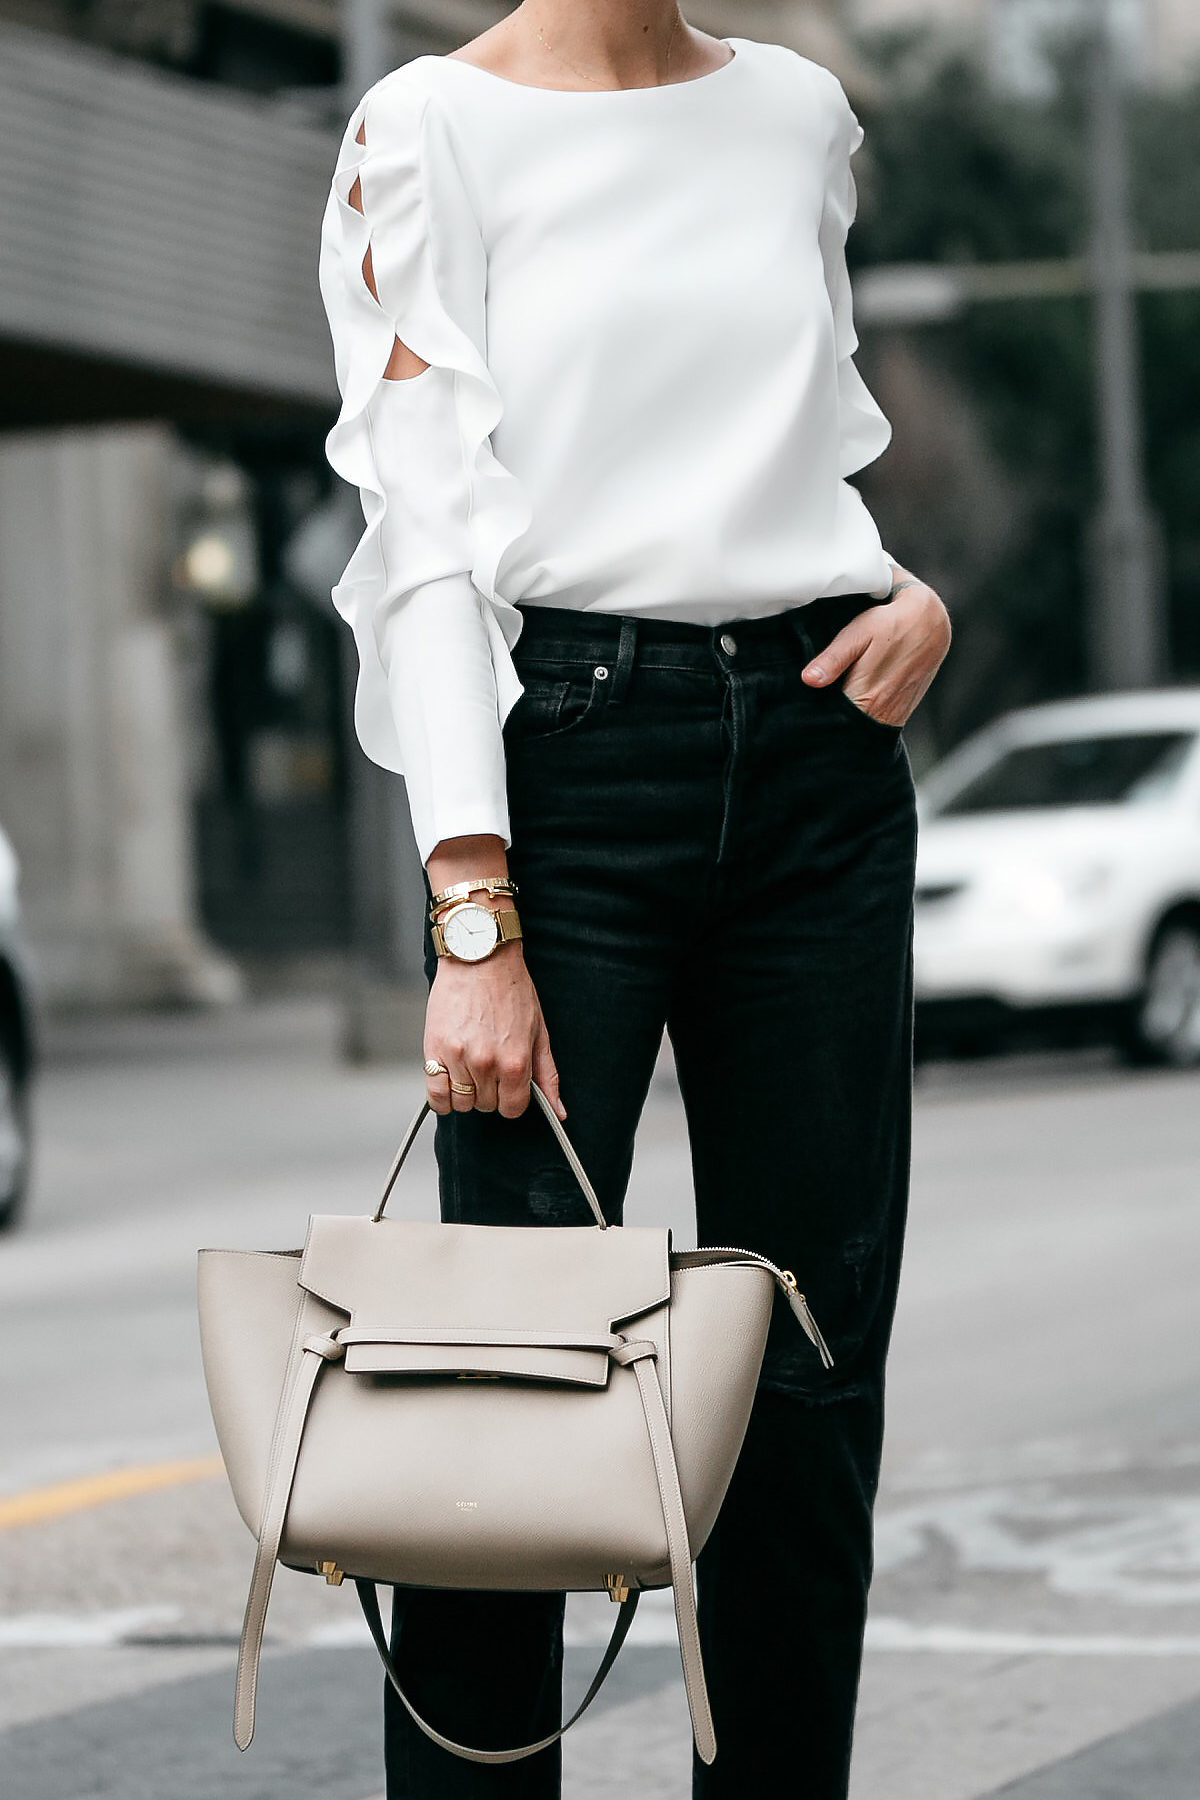 Club Monaco White Ruffle Sleeve Top Frame Black Ripped Boyfriend Jeans Celine Belt Bag Fashion Jackson Dallas Blogger Fashion Blogger Street Style